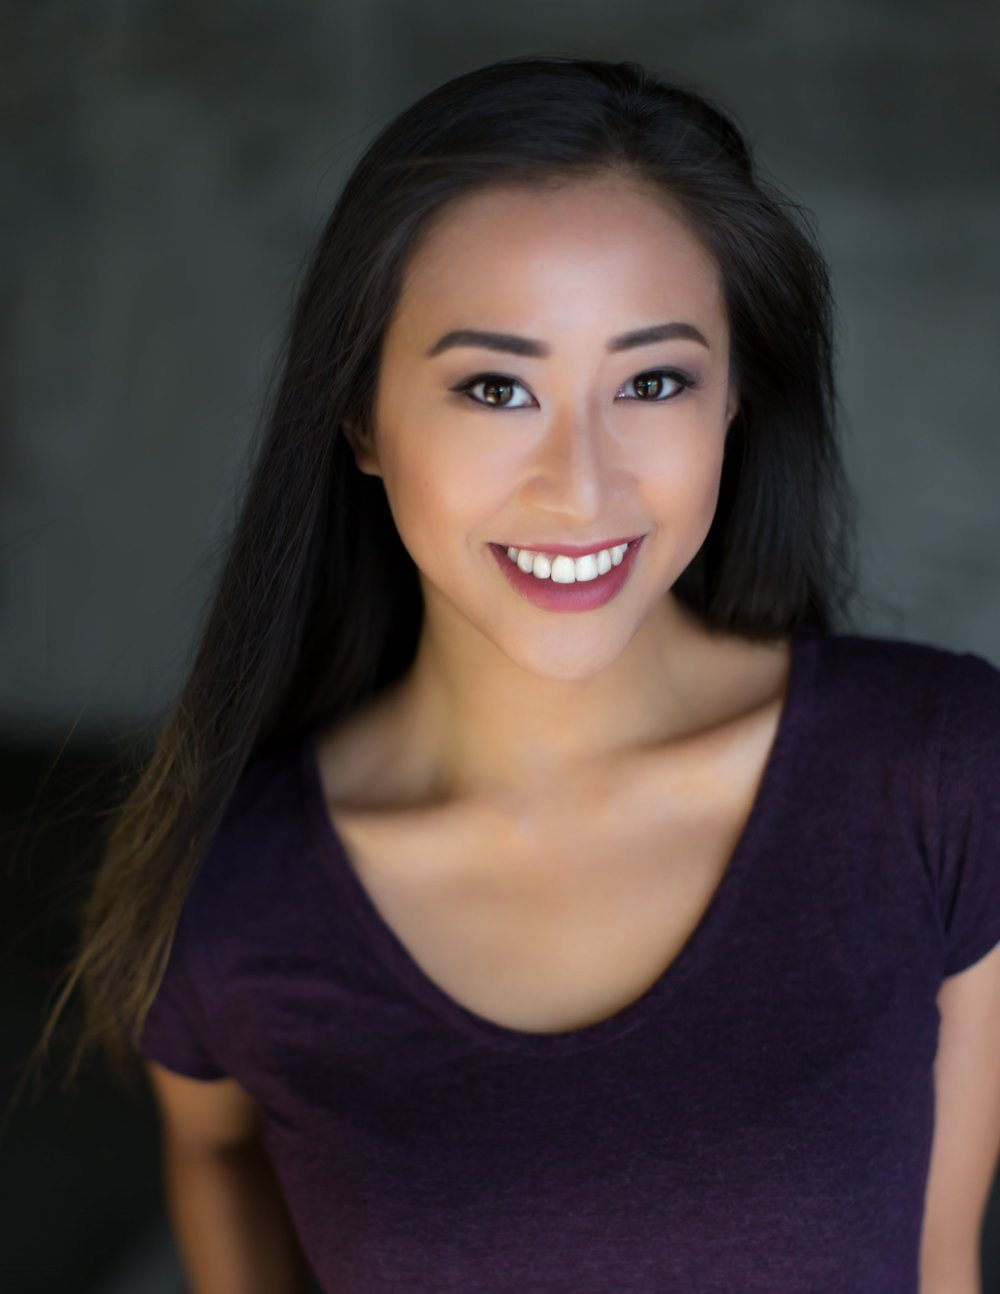 Sandy Chen headshot 2.jpg